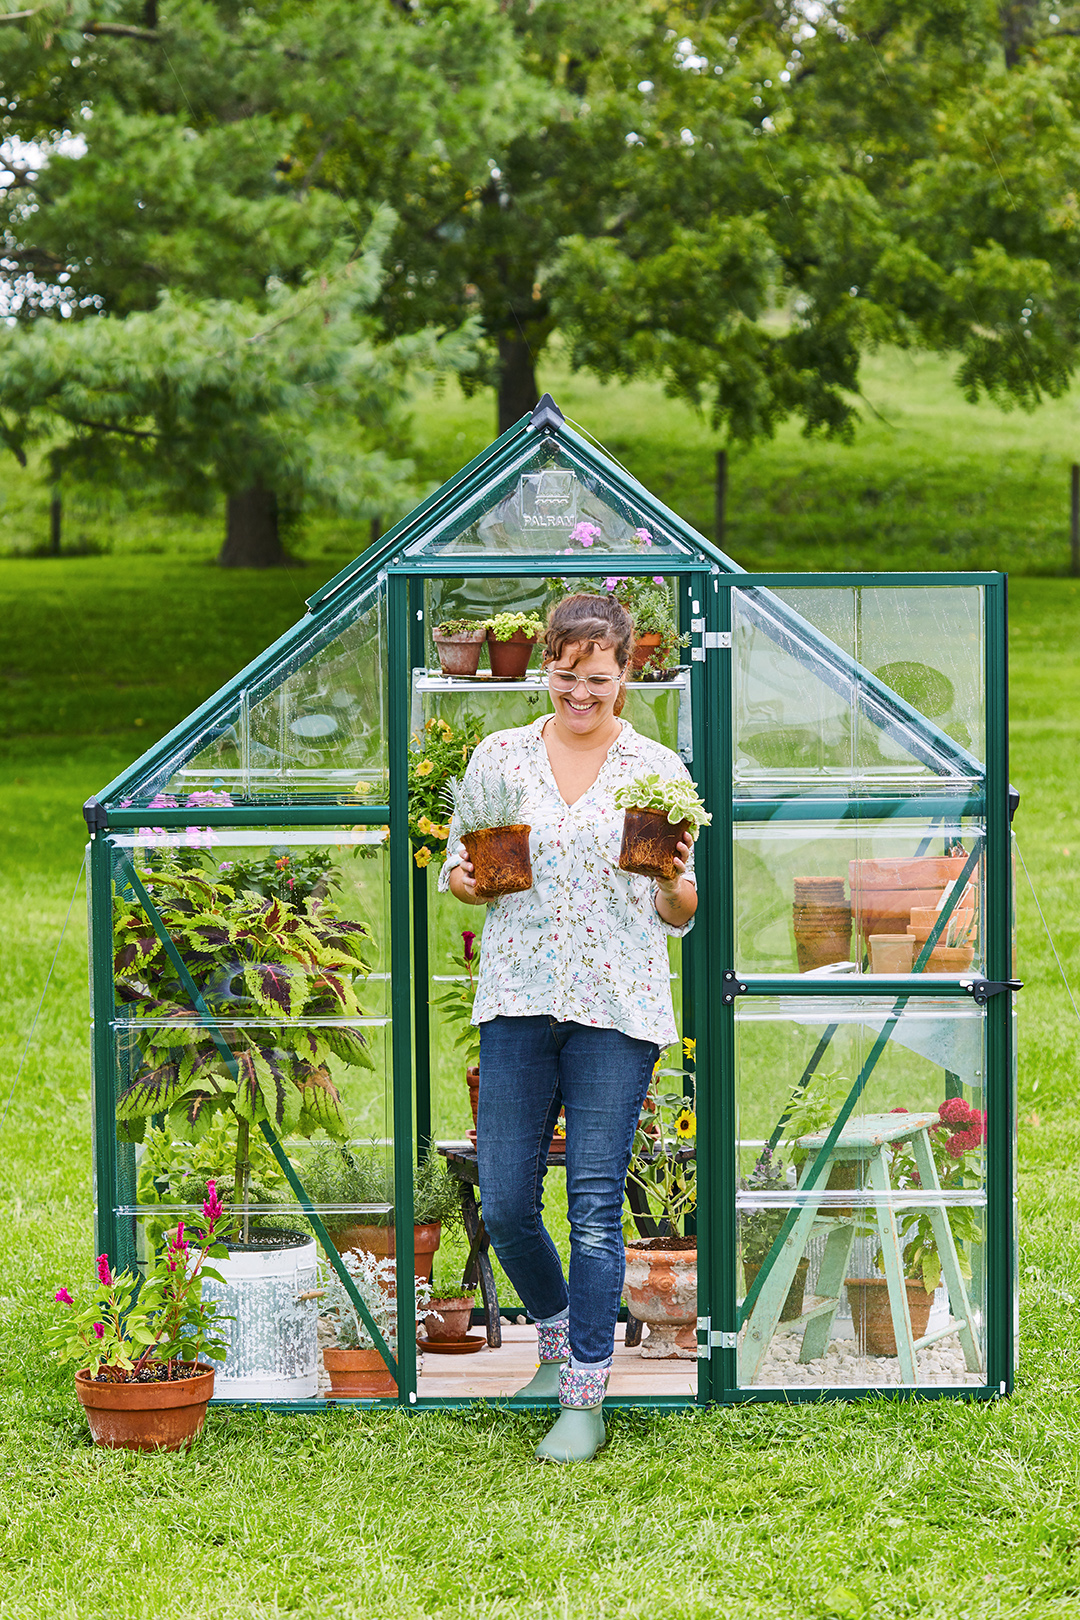 woman carrying two plants from greenhouse